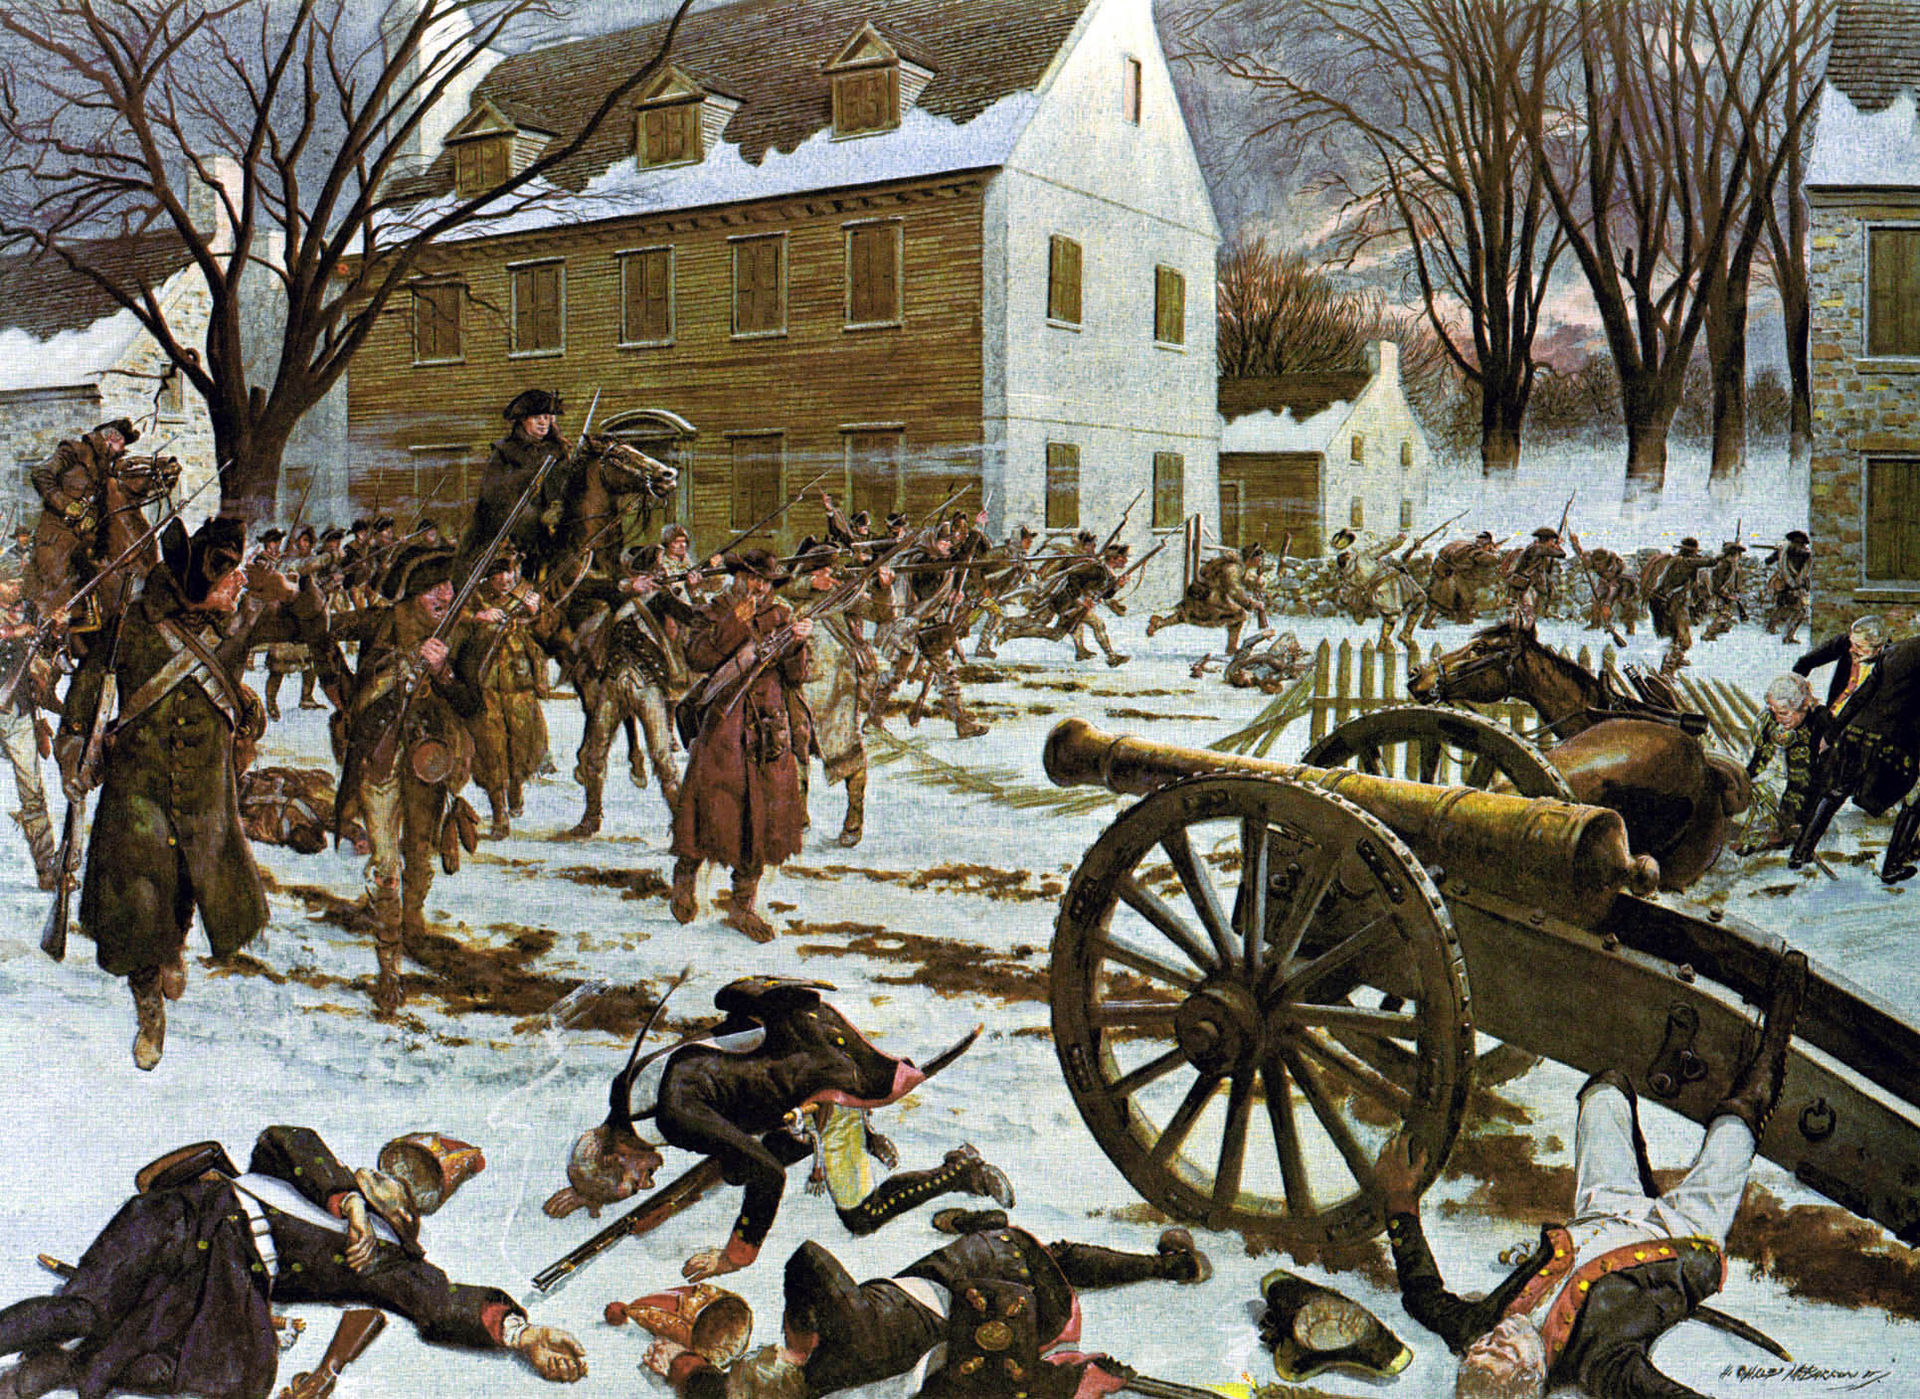 The Battle of Trenton as depicted by H. Charles McBarron, with the barracks in the background.